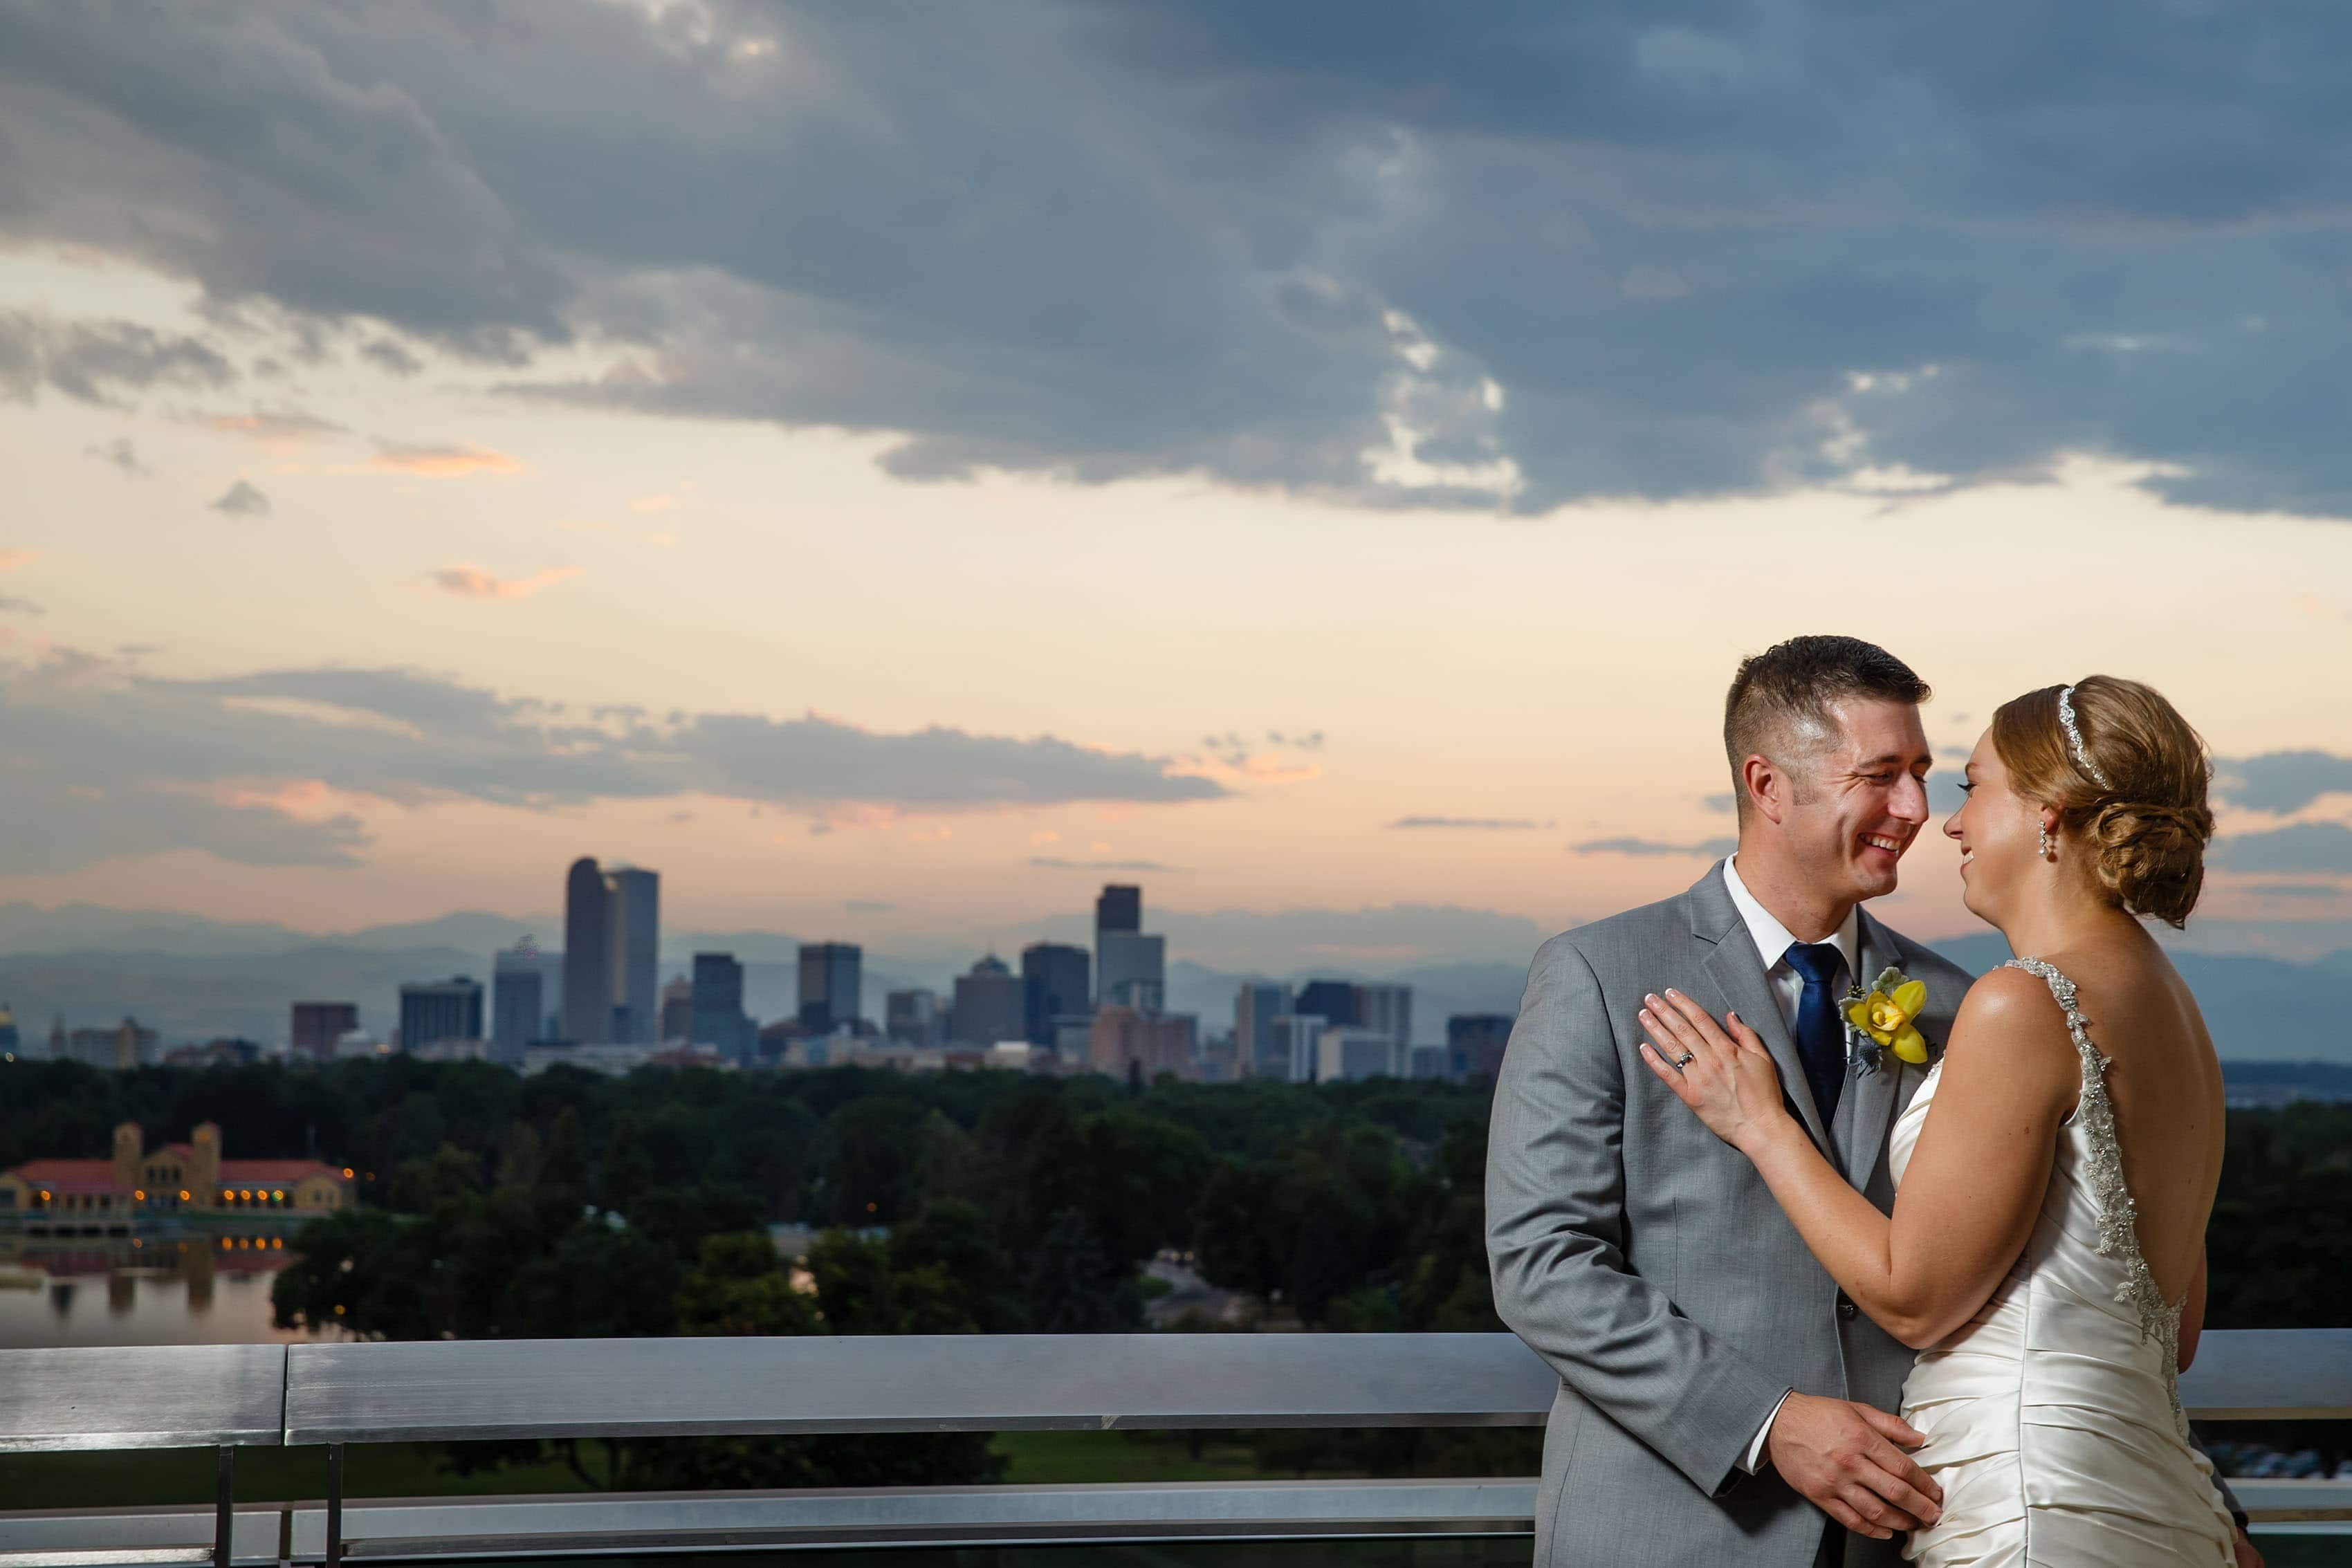 Newlyweds pose in front of the Denver skyline